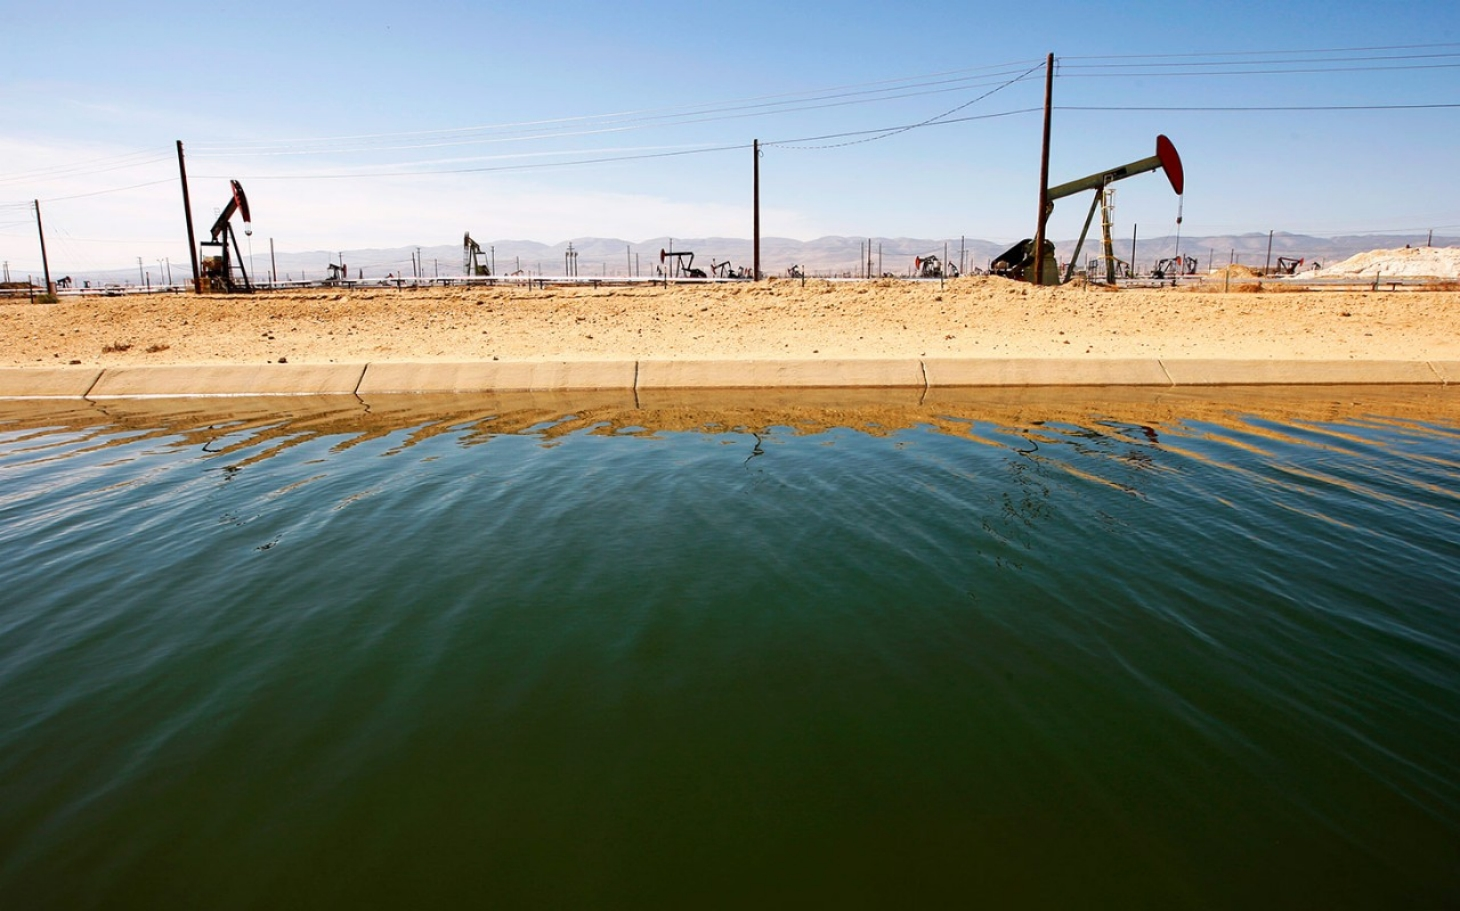 Epa Fracking Doesn T Systematically Pollute Water Al Jazeera America